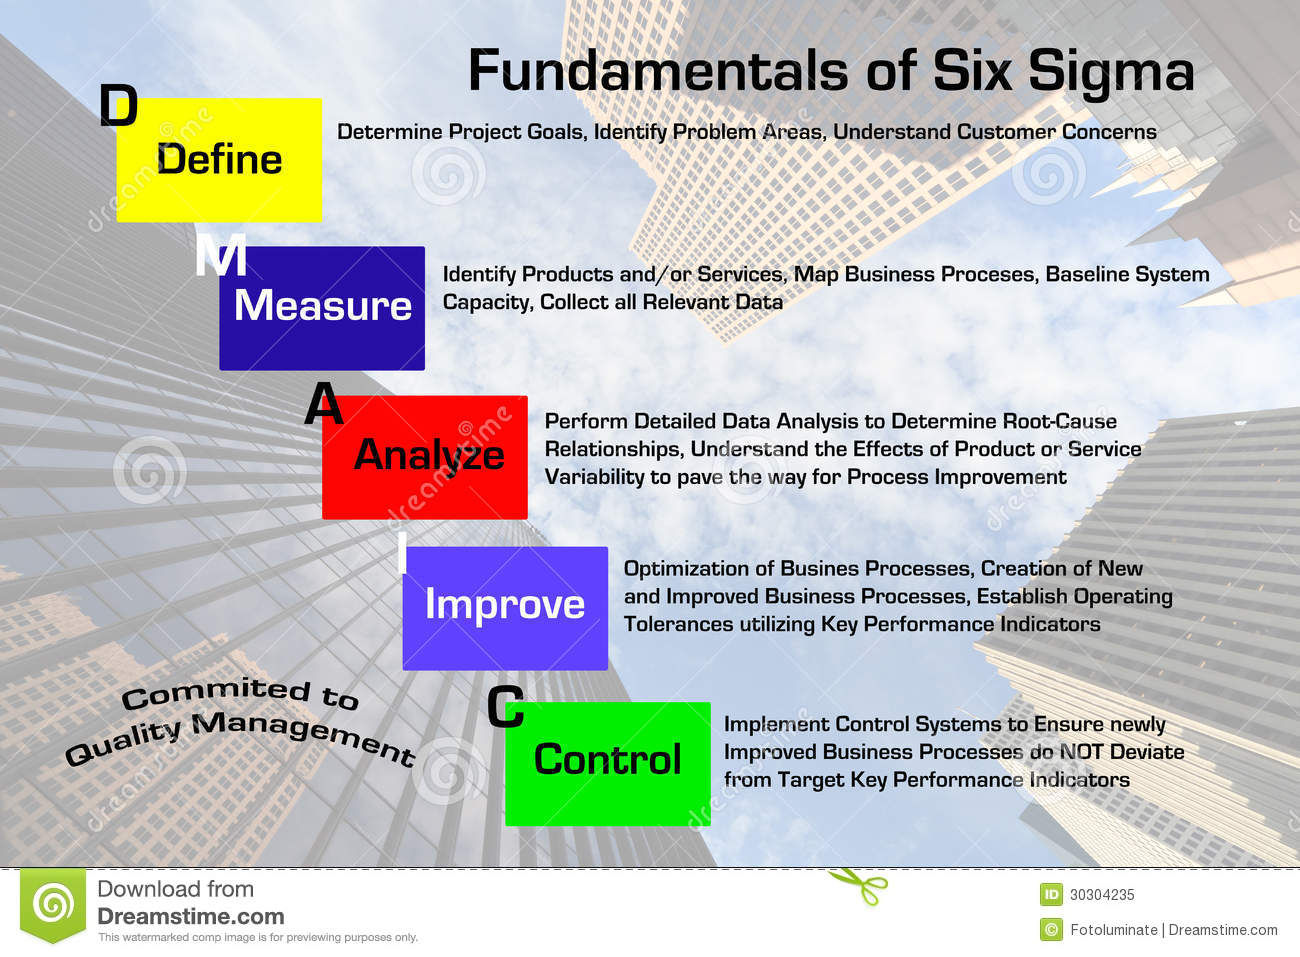 fundamentals of business Finance foundations course by: jim stice and earl kay stice share linkedin we've been teaching in business schools around the world for a combined total of.